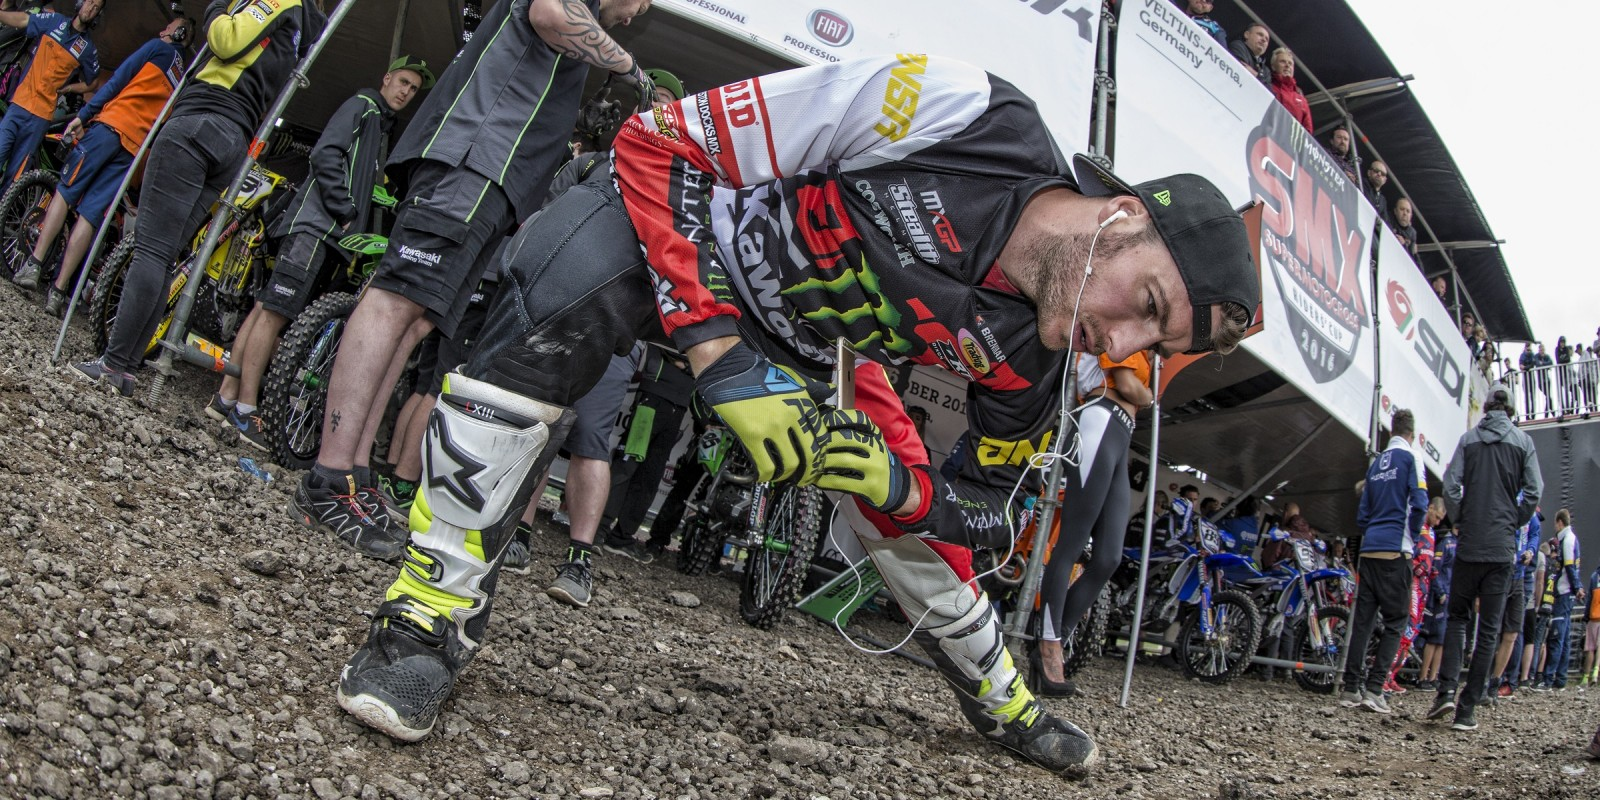 Tommy Searle at the 2016 MXGP of Great Britain